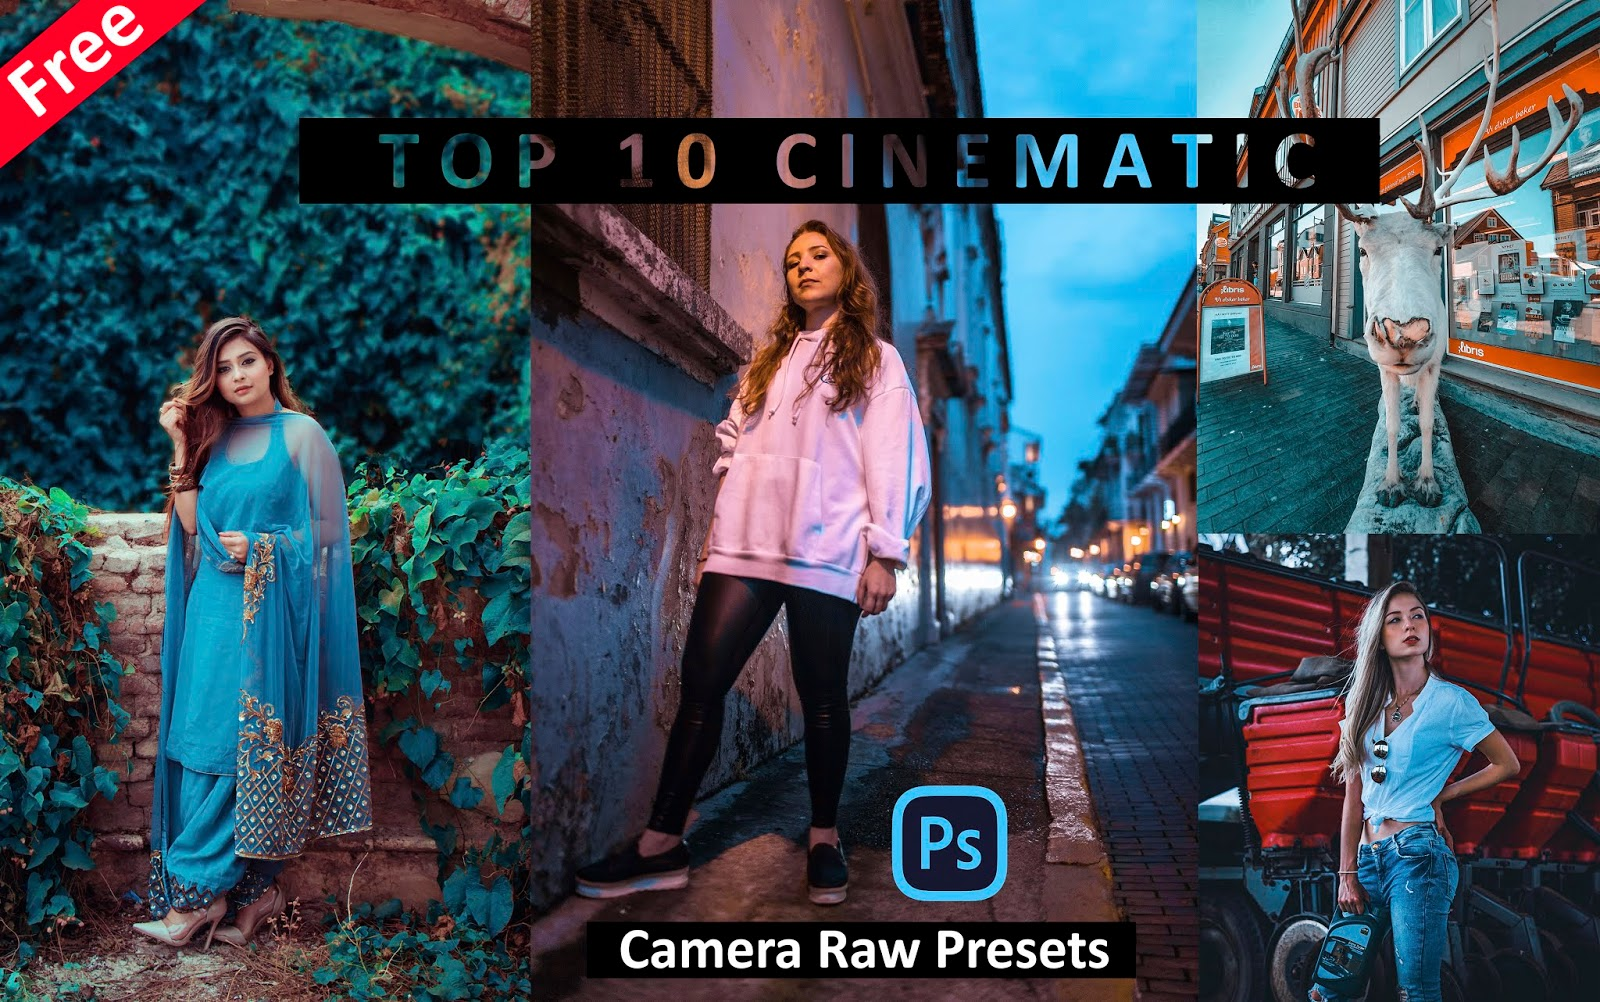 Download Top 10 CINEMATIC Camera Raw Presets for Free